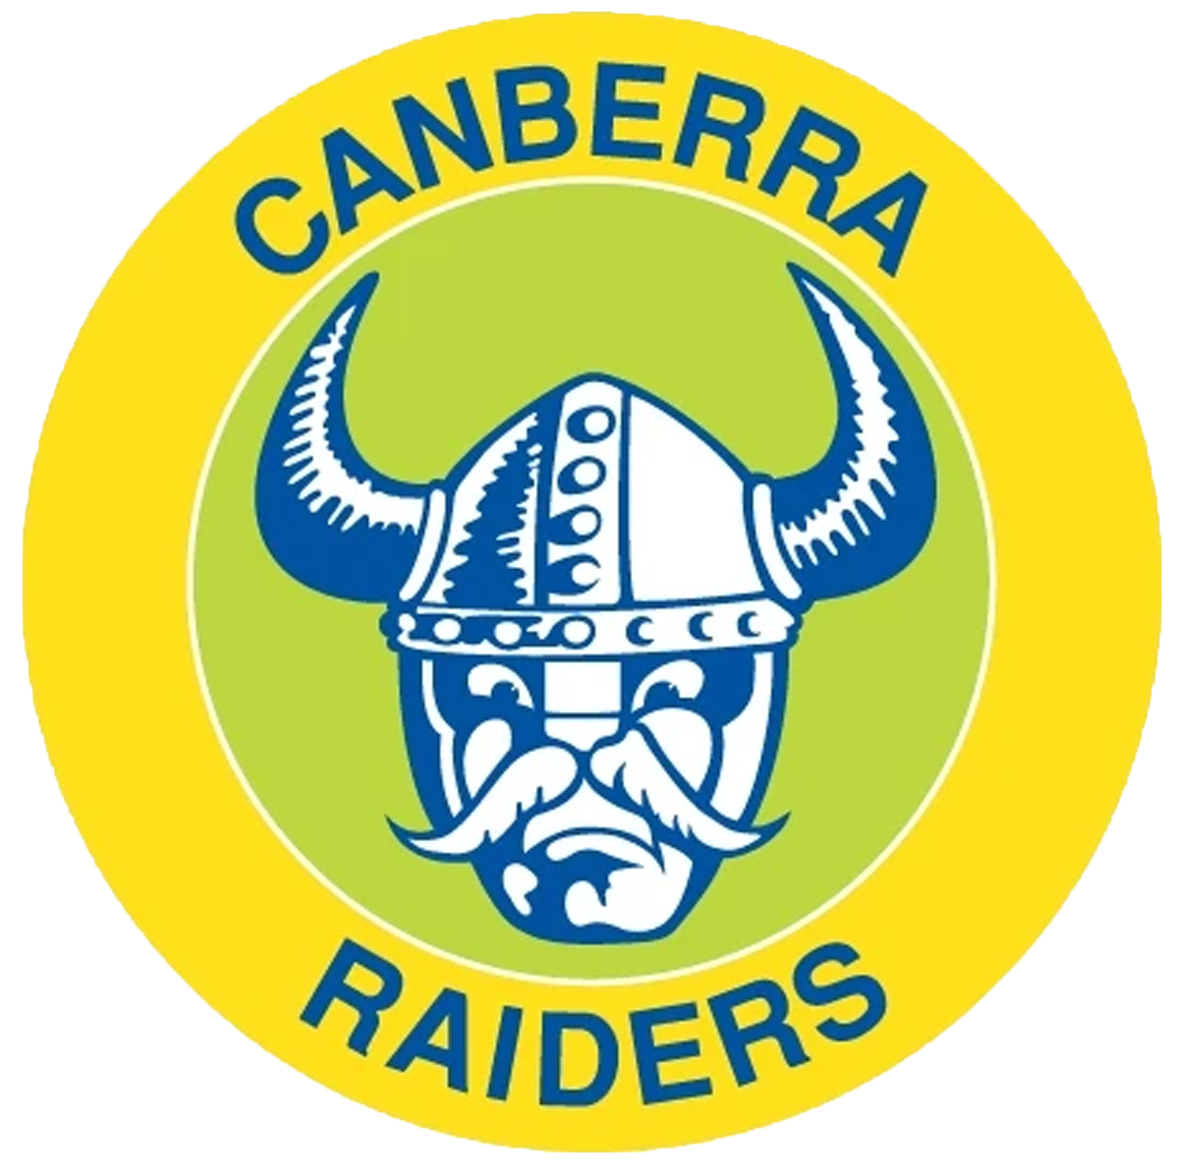 Canberra Raiders/Other